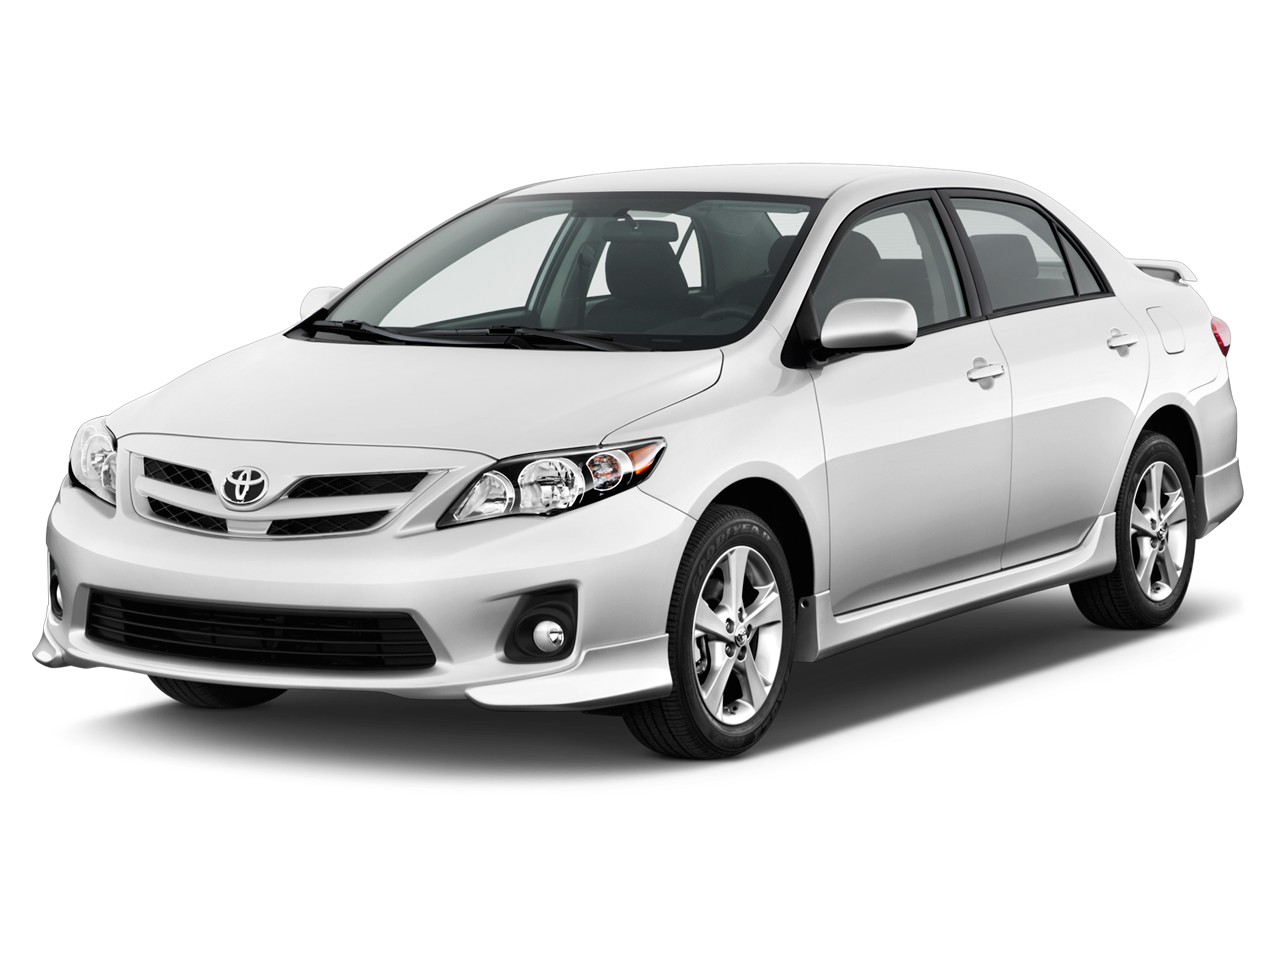 Download Toyota Car Png Picture HQ PNG Image | FreePNGImg